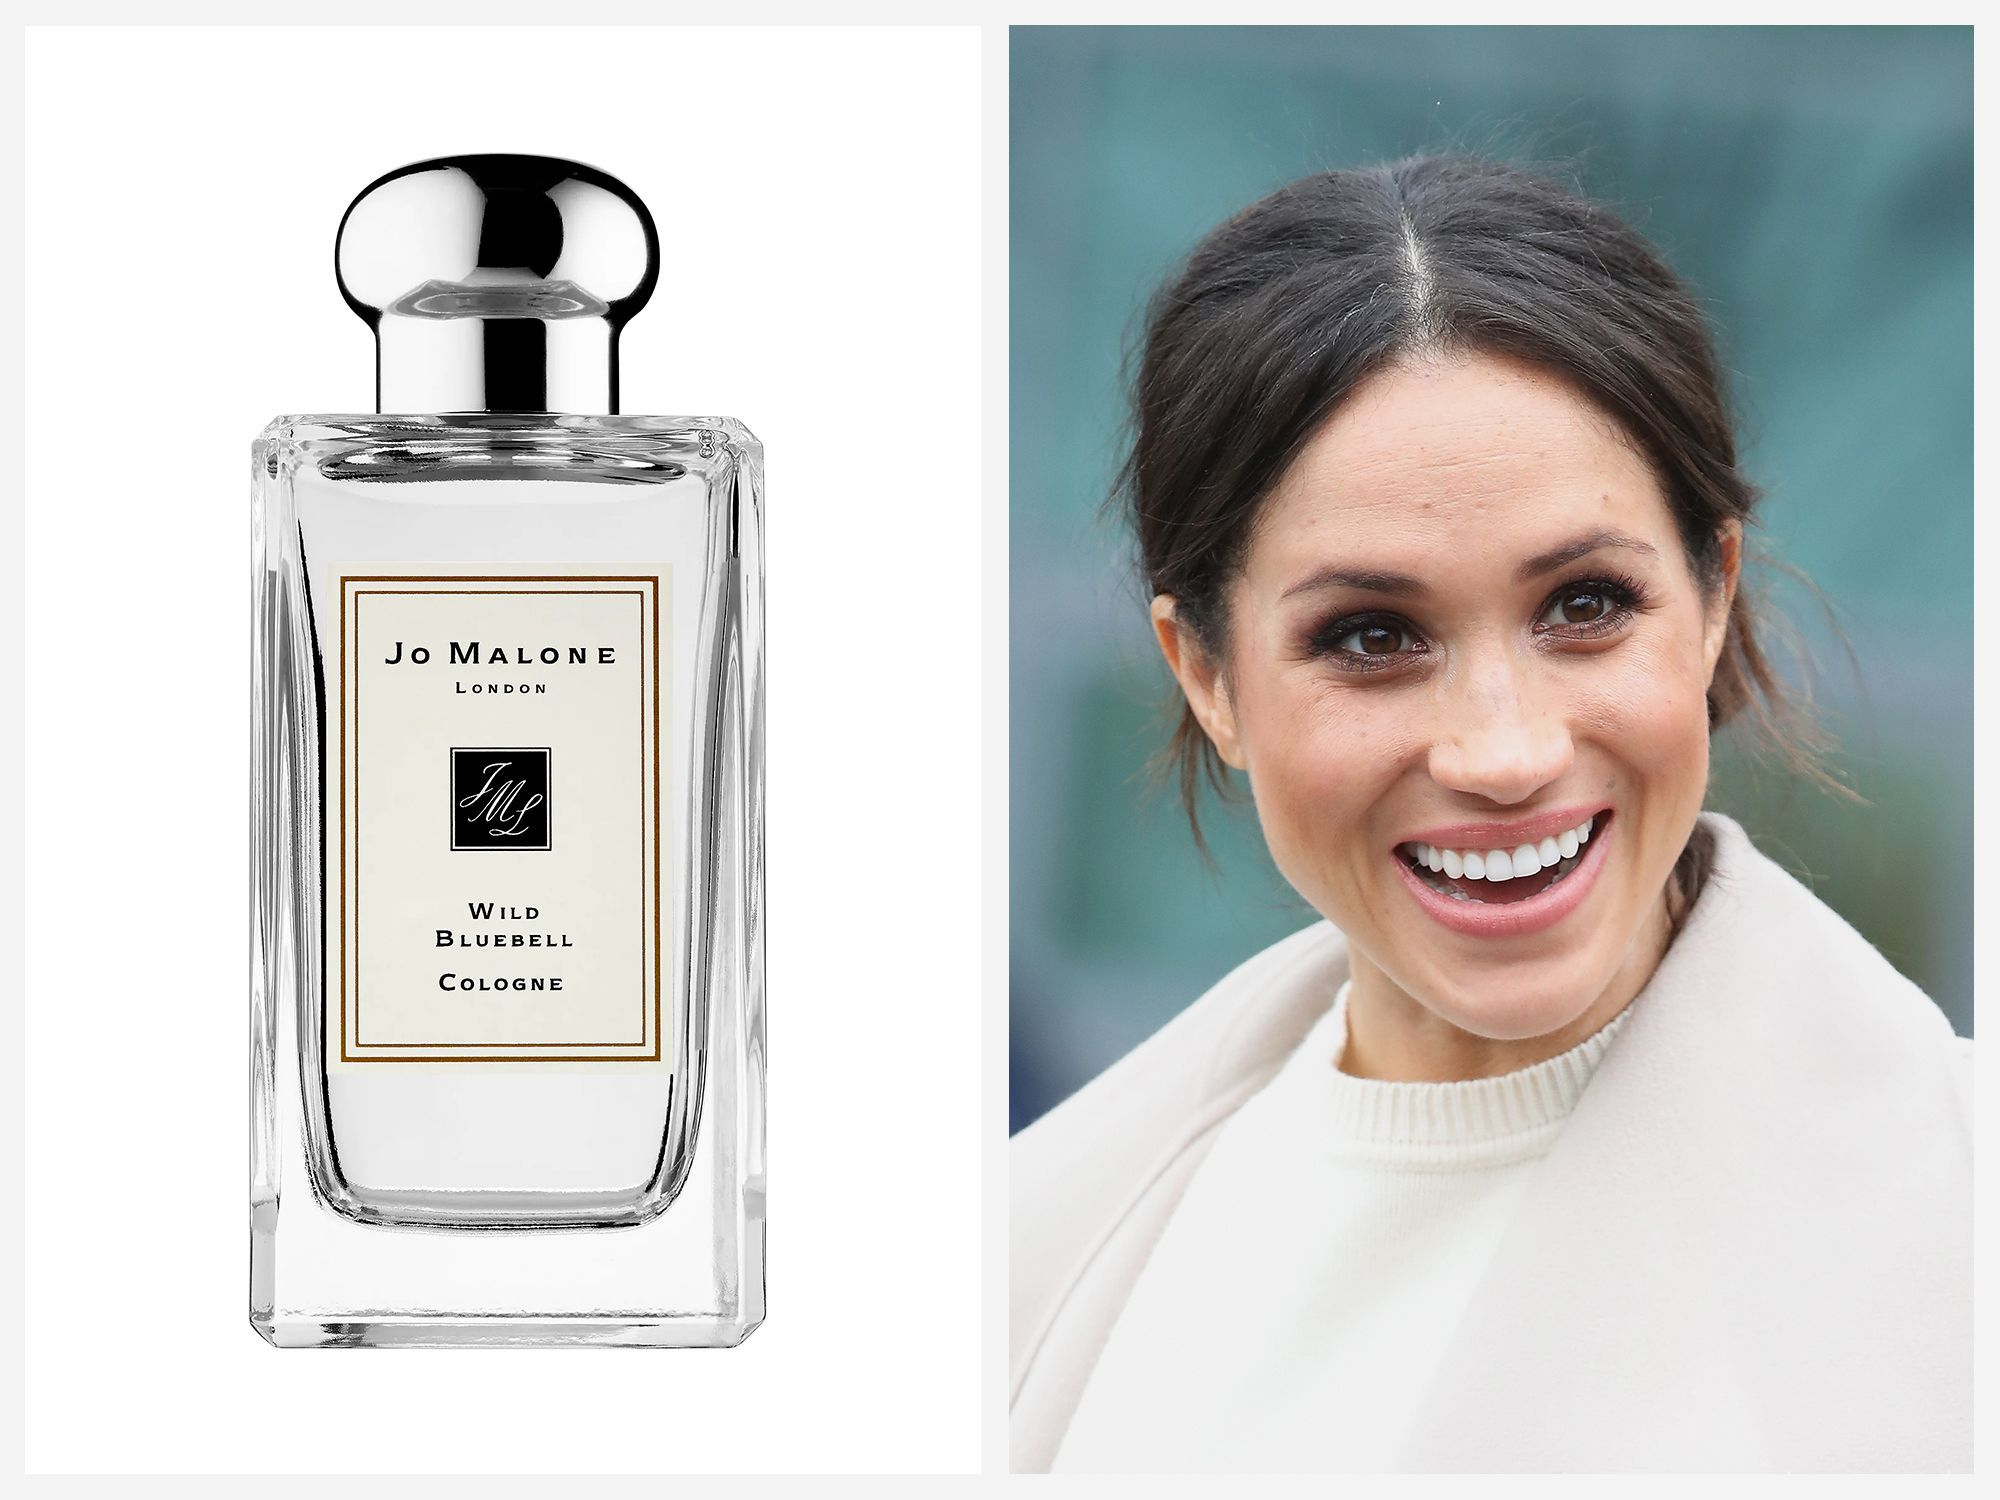 The Duchess of Cambridge has reportedly worn Jo Malone London Wild Bluebell on and off over the years.